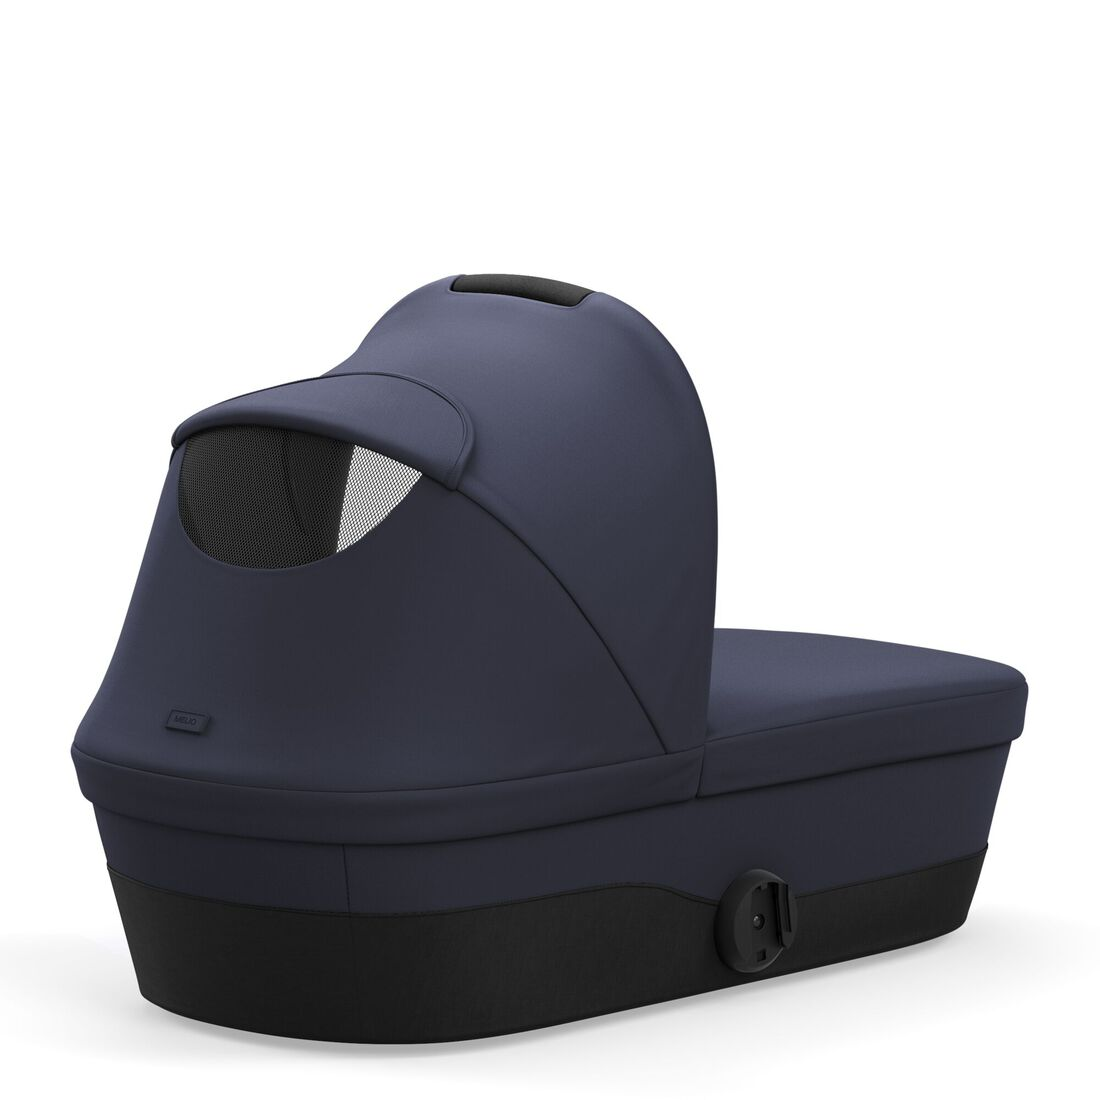 CYBEX Melio Cot - Navy Blue in Navy Blue large image number 4